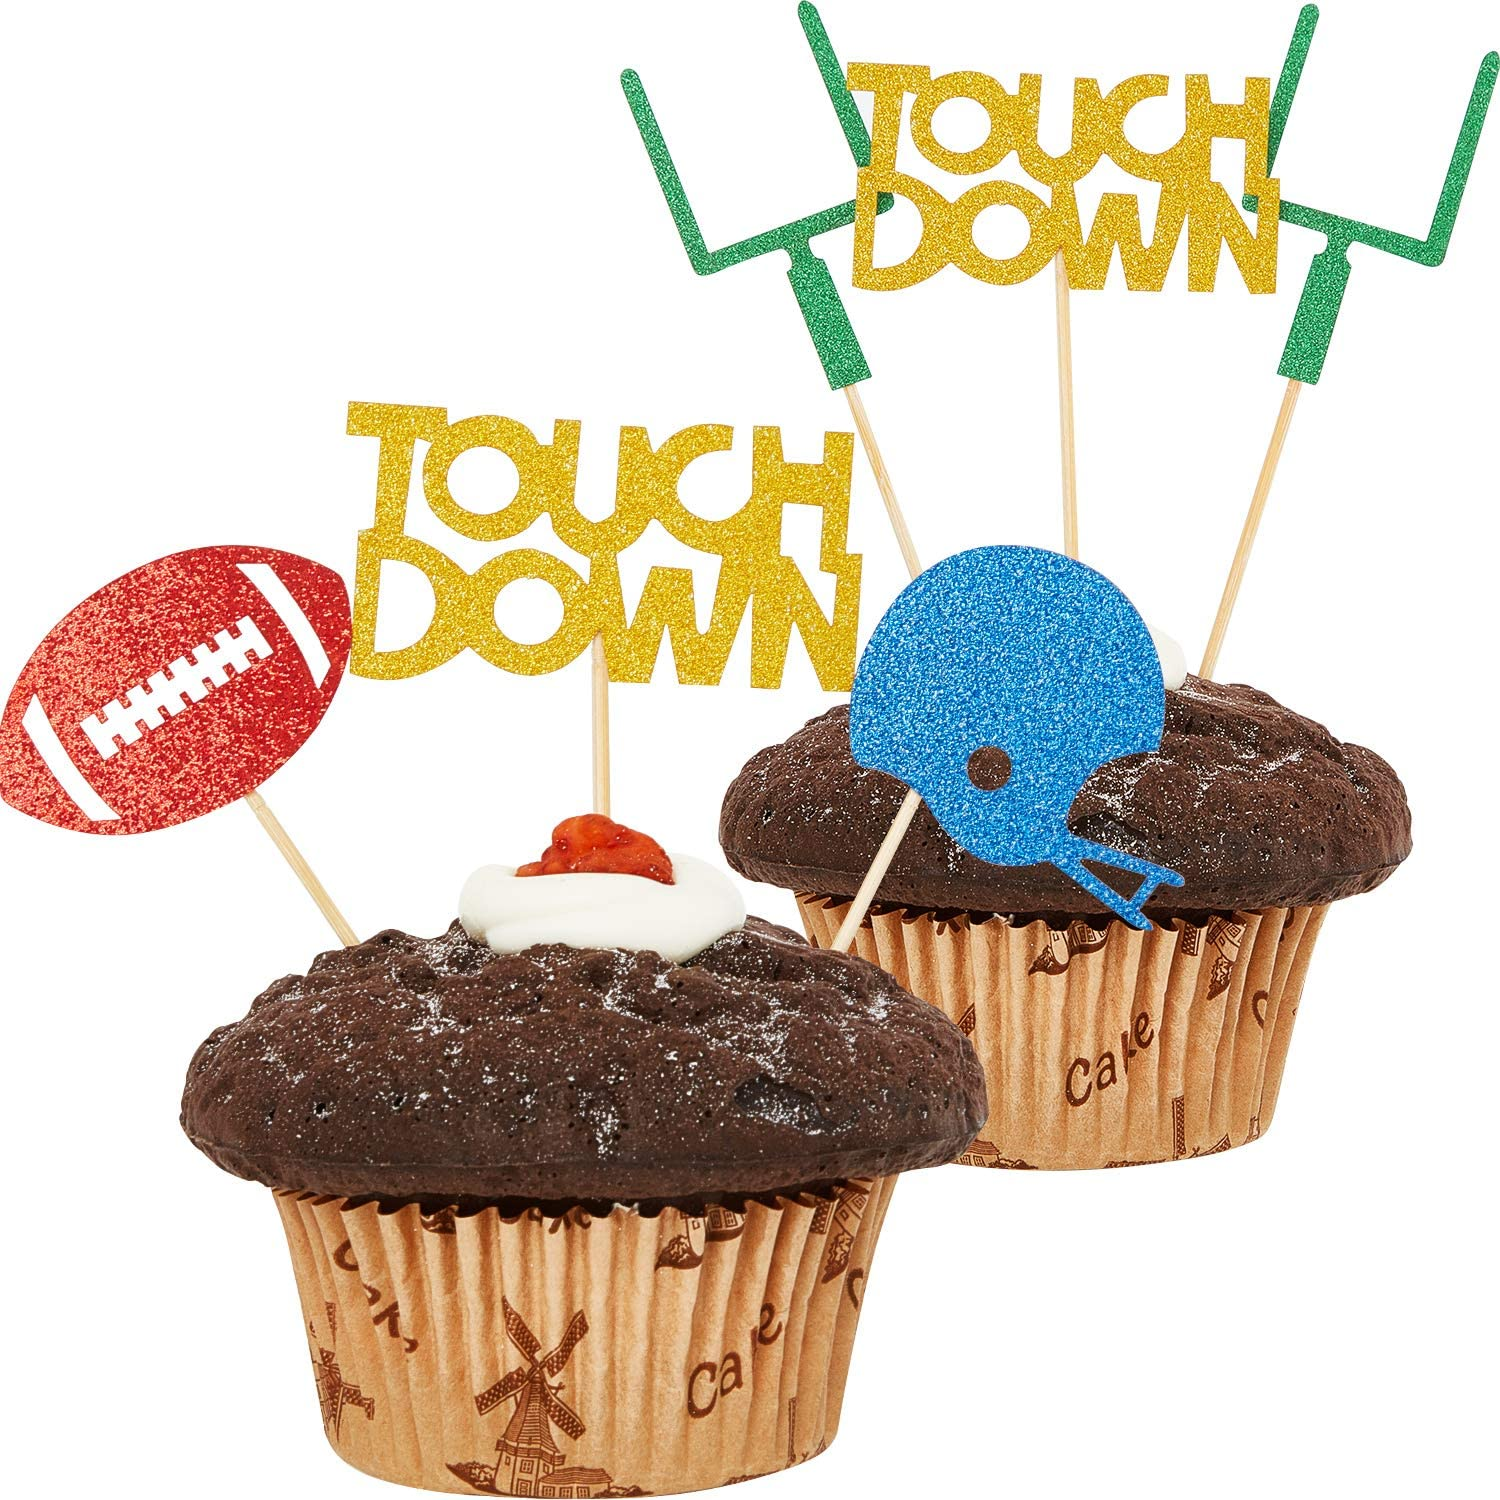 48 Pieces Football Cupcake Toppers Rugby Ball Cake Toppers Rugby Football Cake Decorations for Birthday Baby Shower Party Supplies